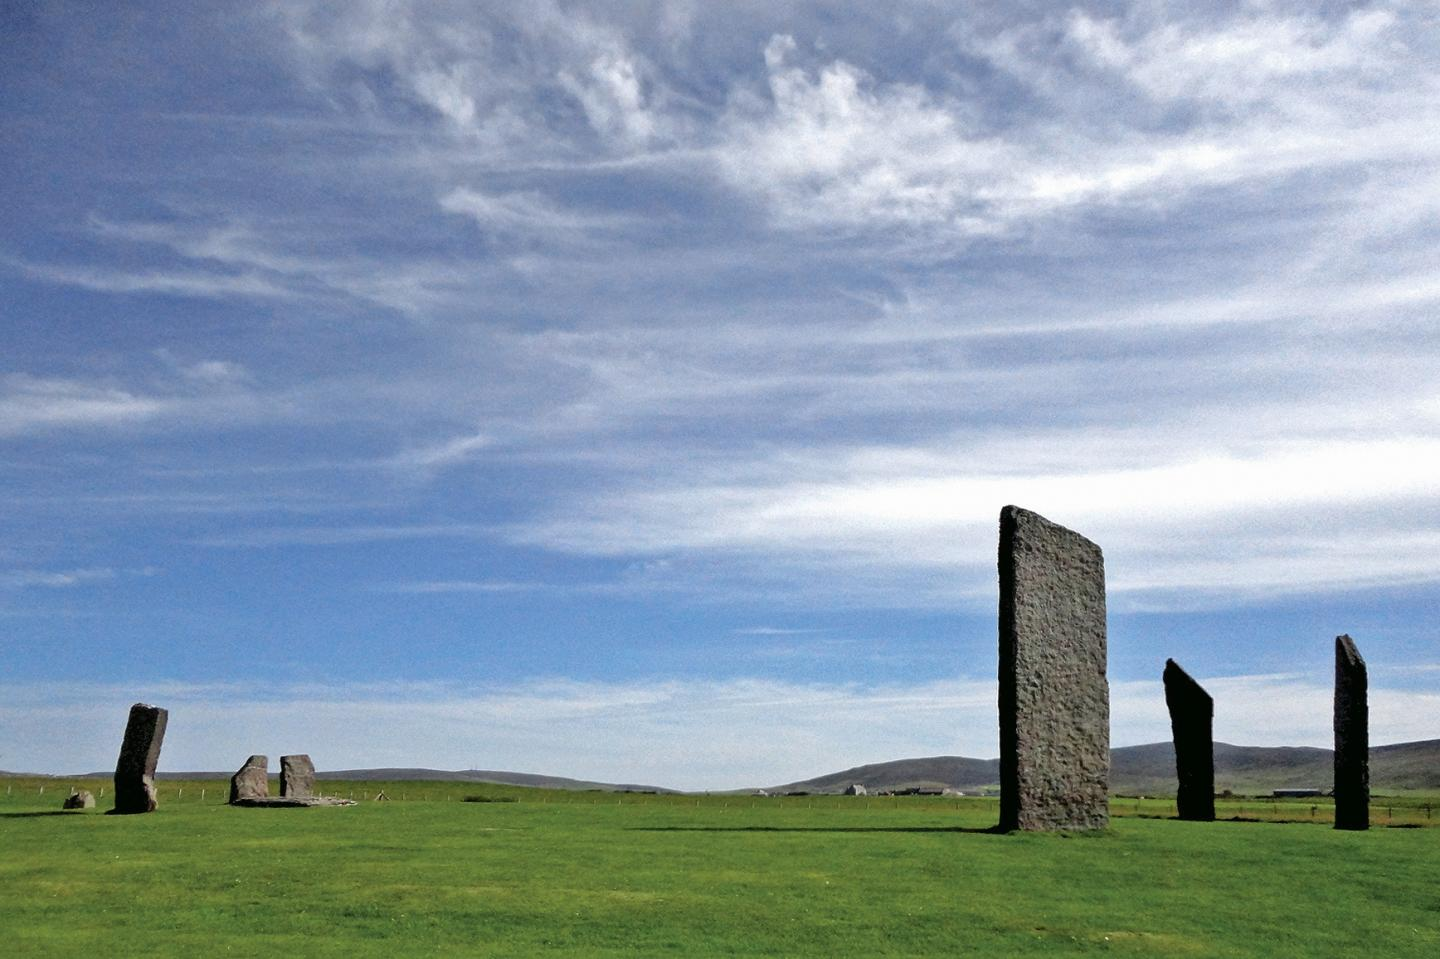 The great stone circle Stenness, in Orkney, Scotland